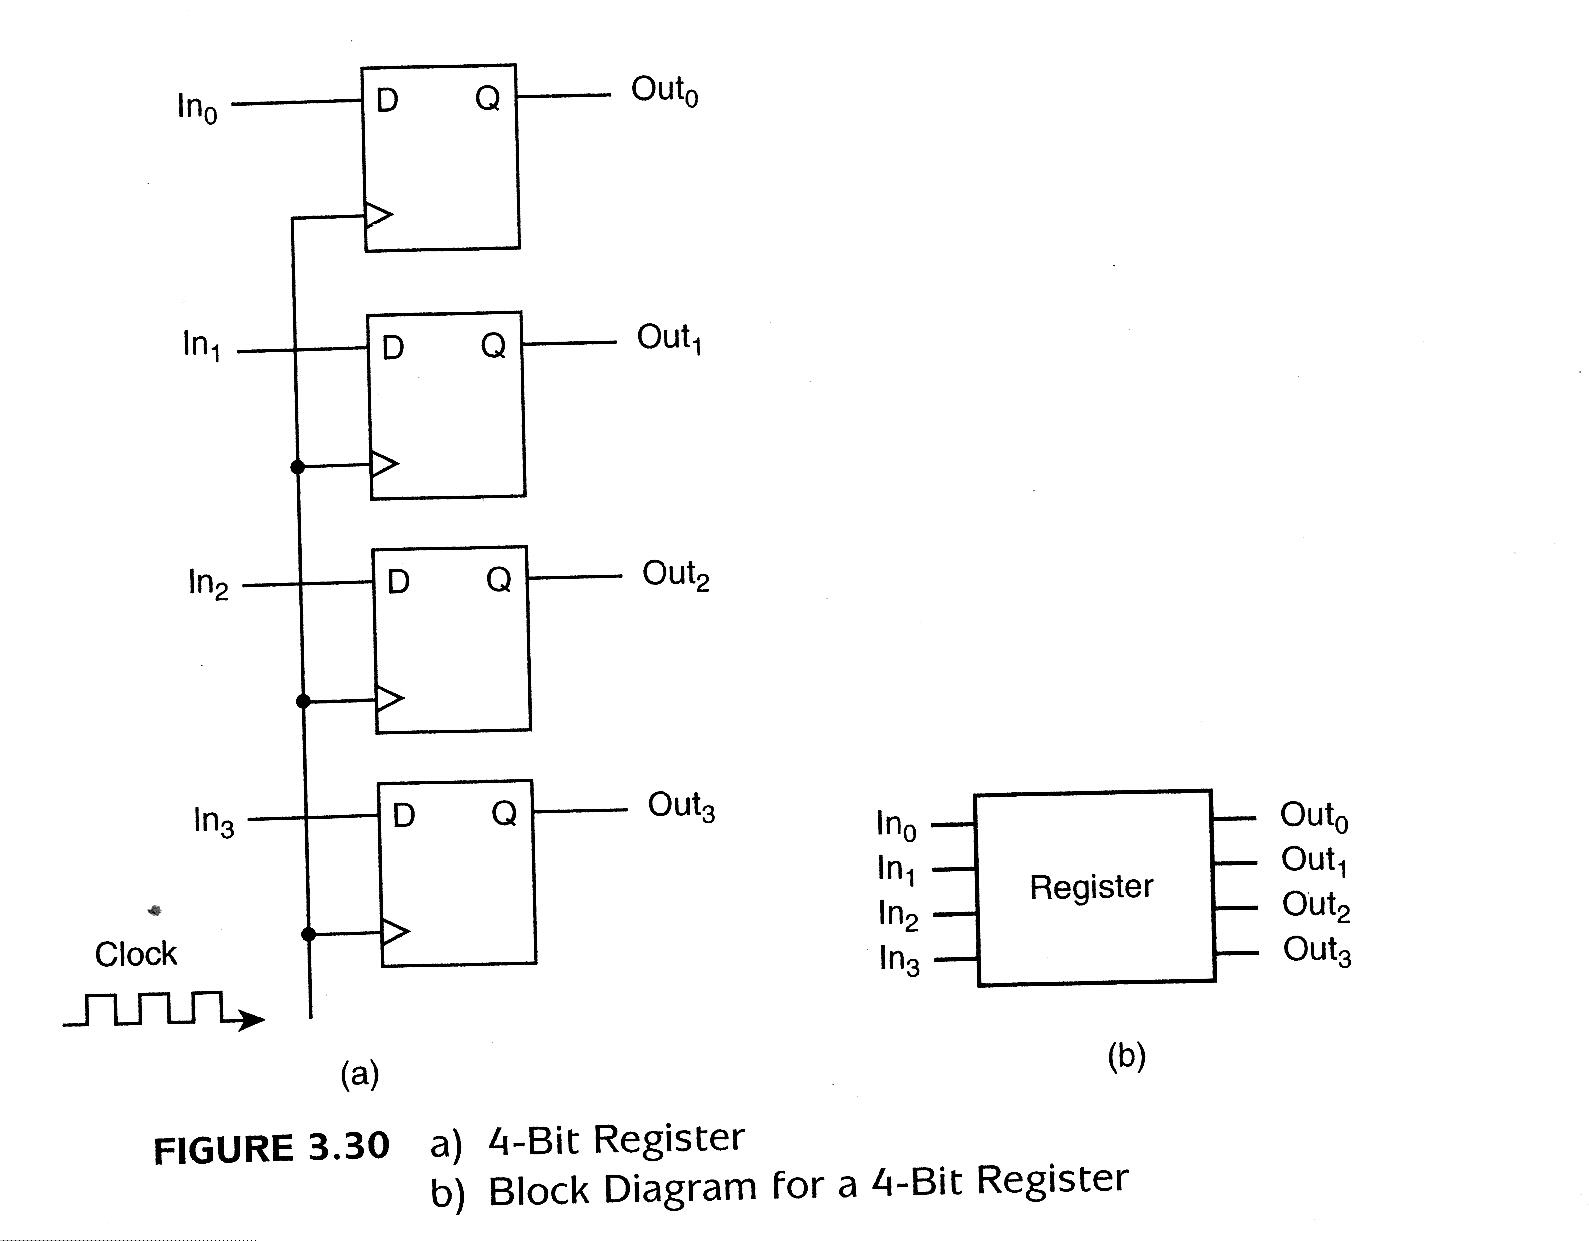 Null Lobur Figures 1 Bit Alu Block Diagram Figure 330 A 4 Register